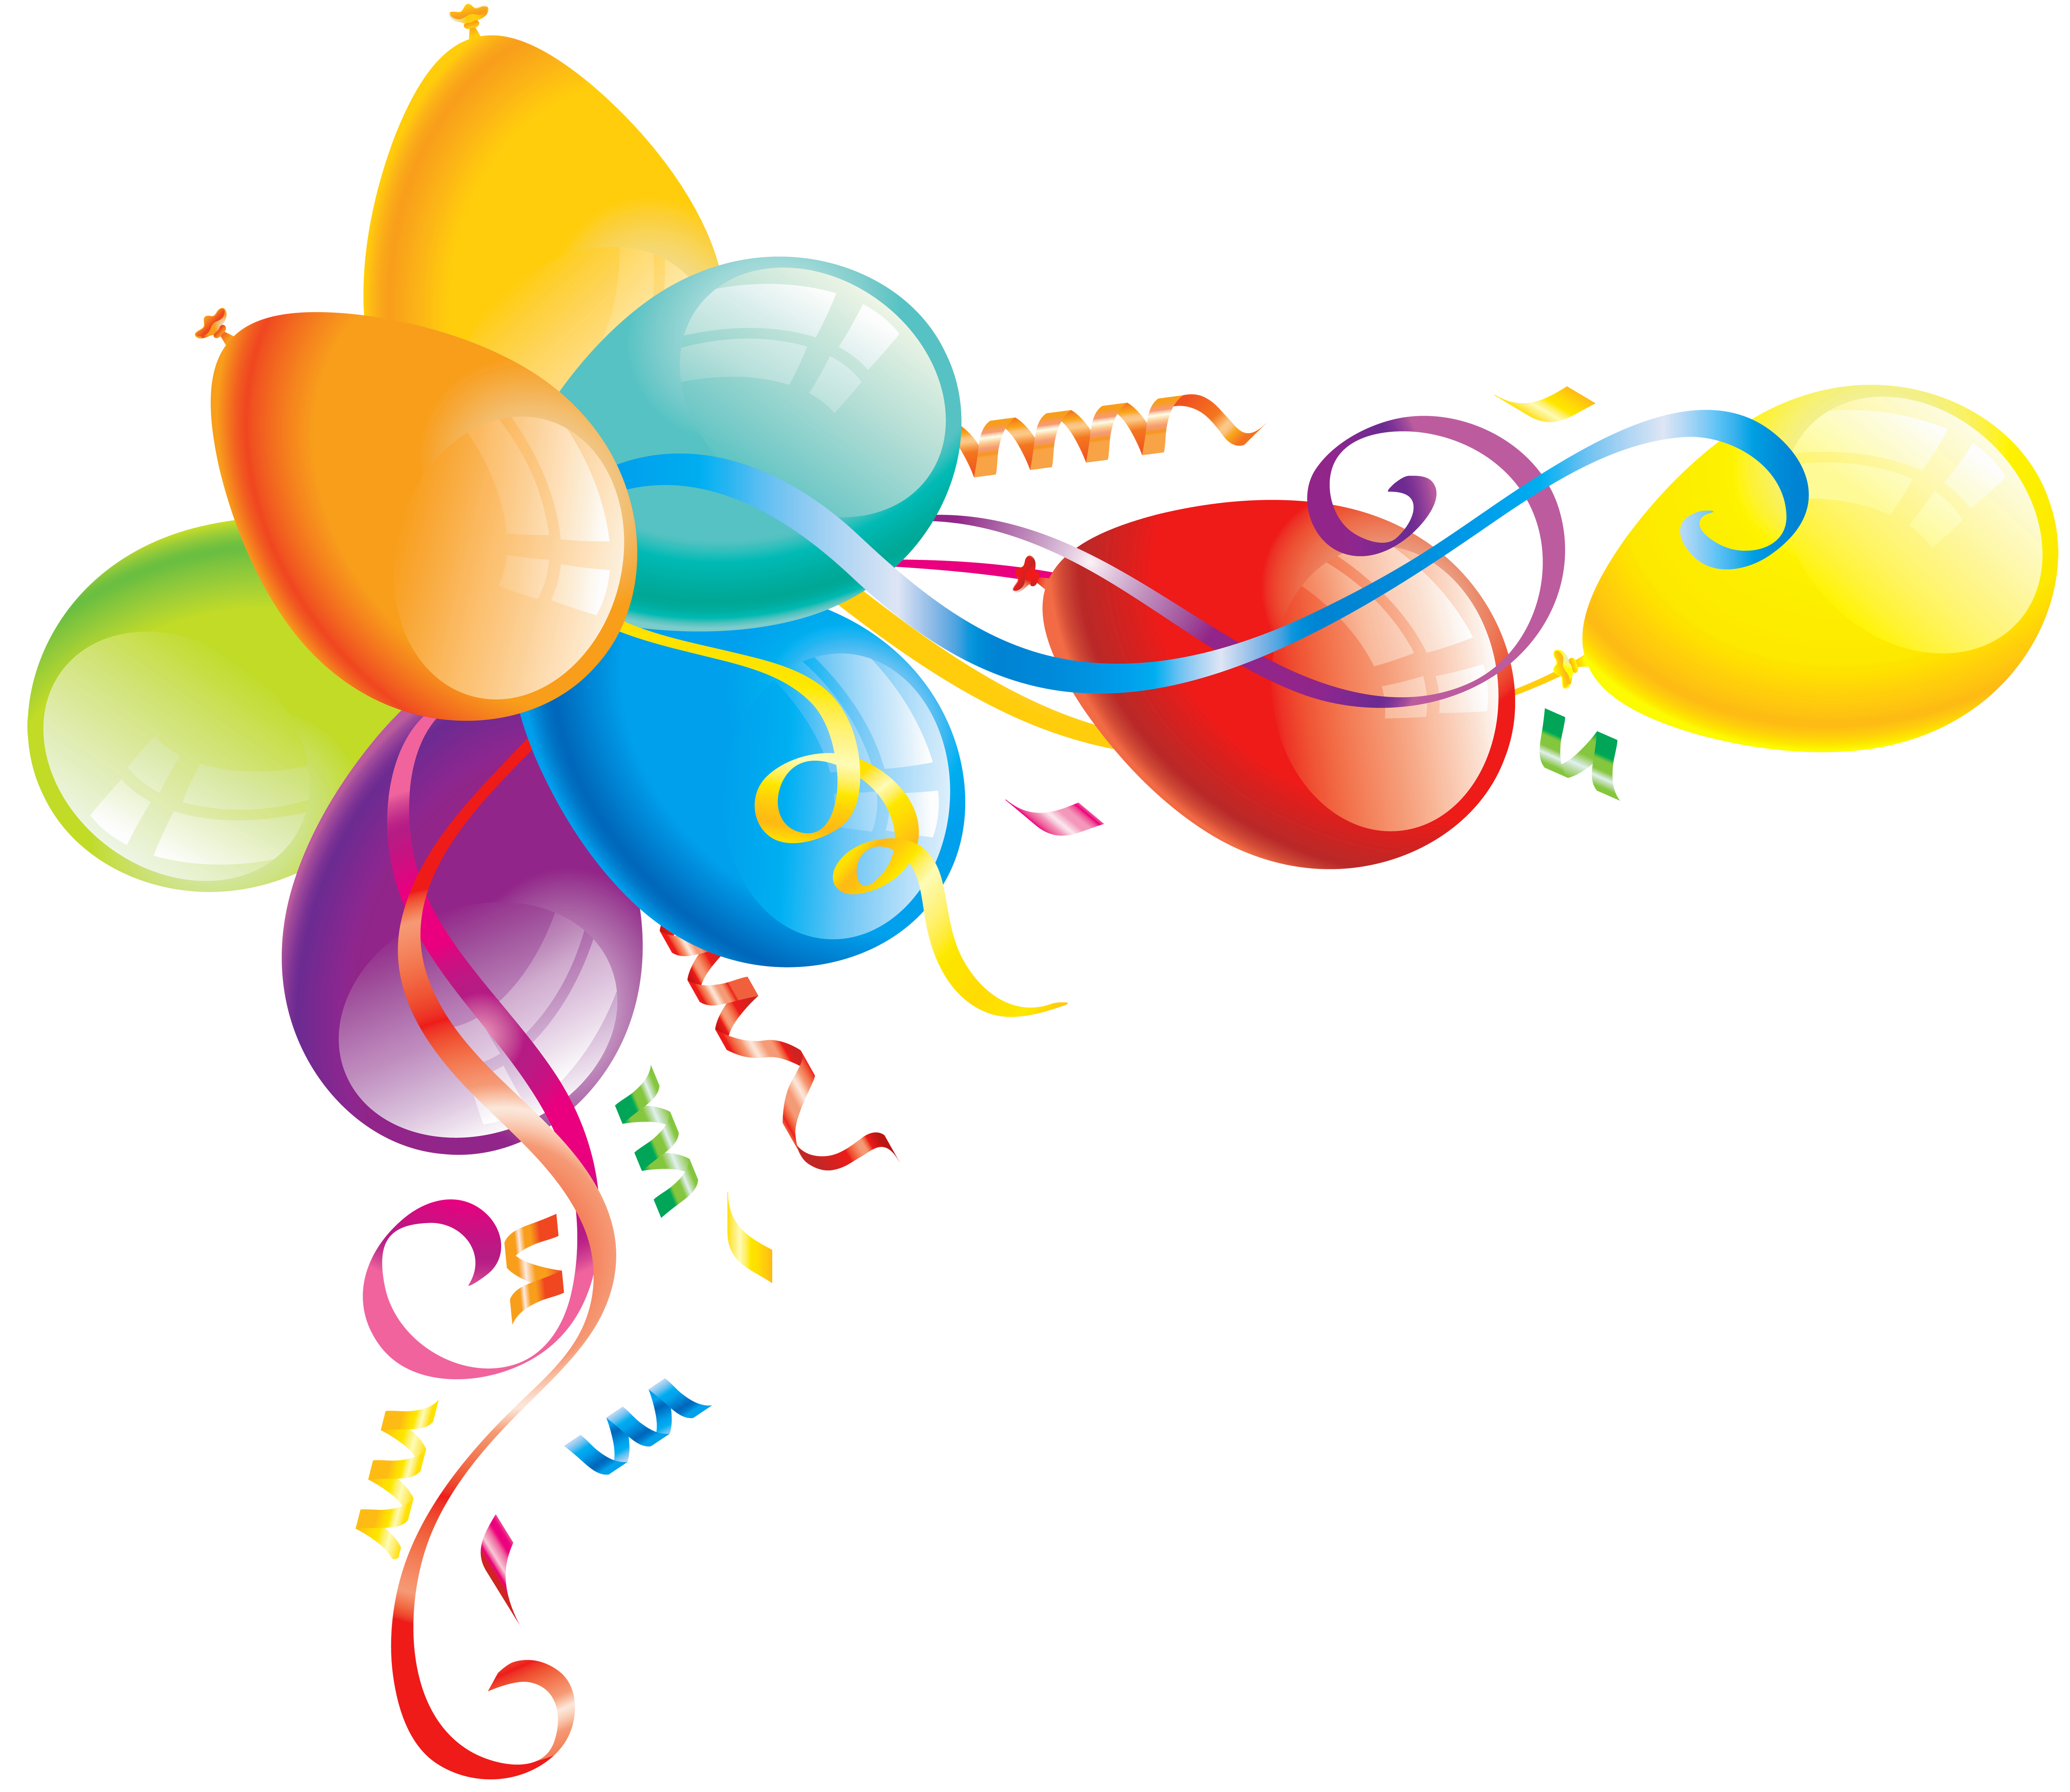 Free Balloons Cliparts, Download Free Clip Art, Free Clip.